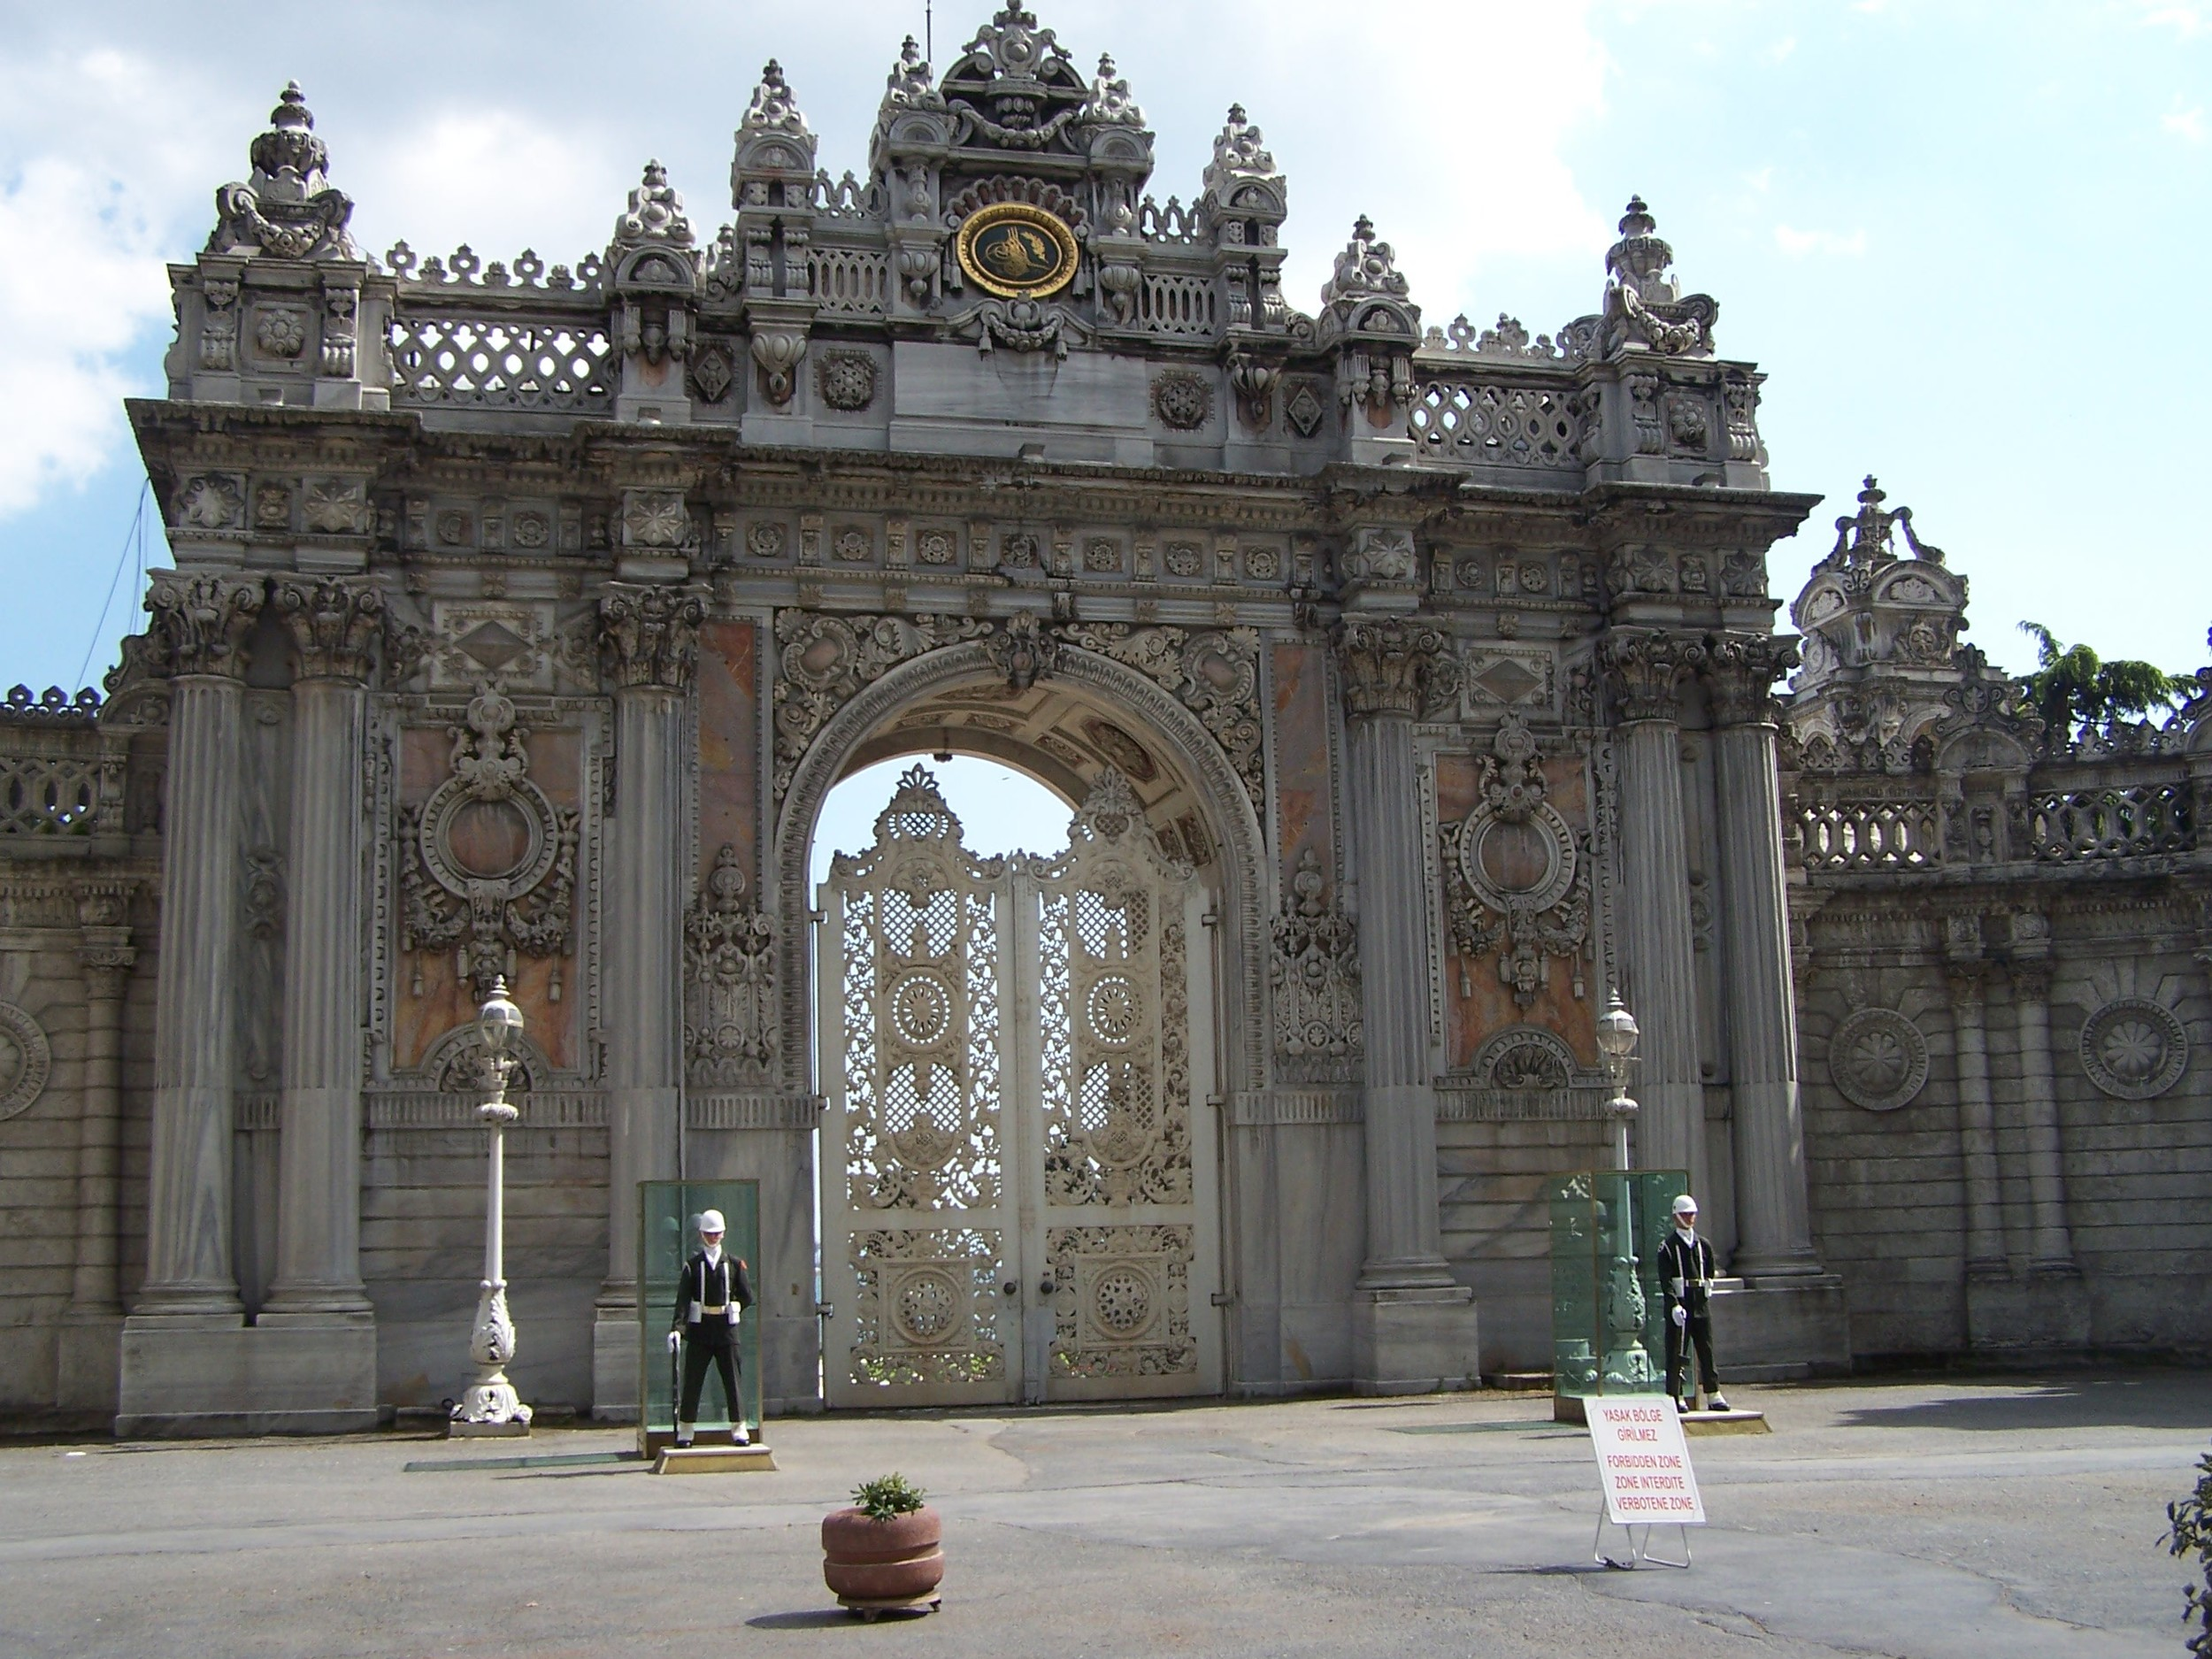 the gates of the Dolmabahçe Palace